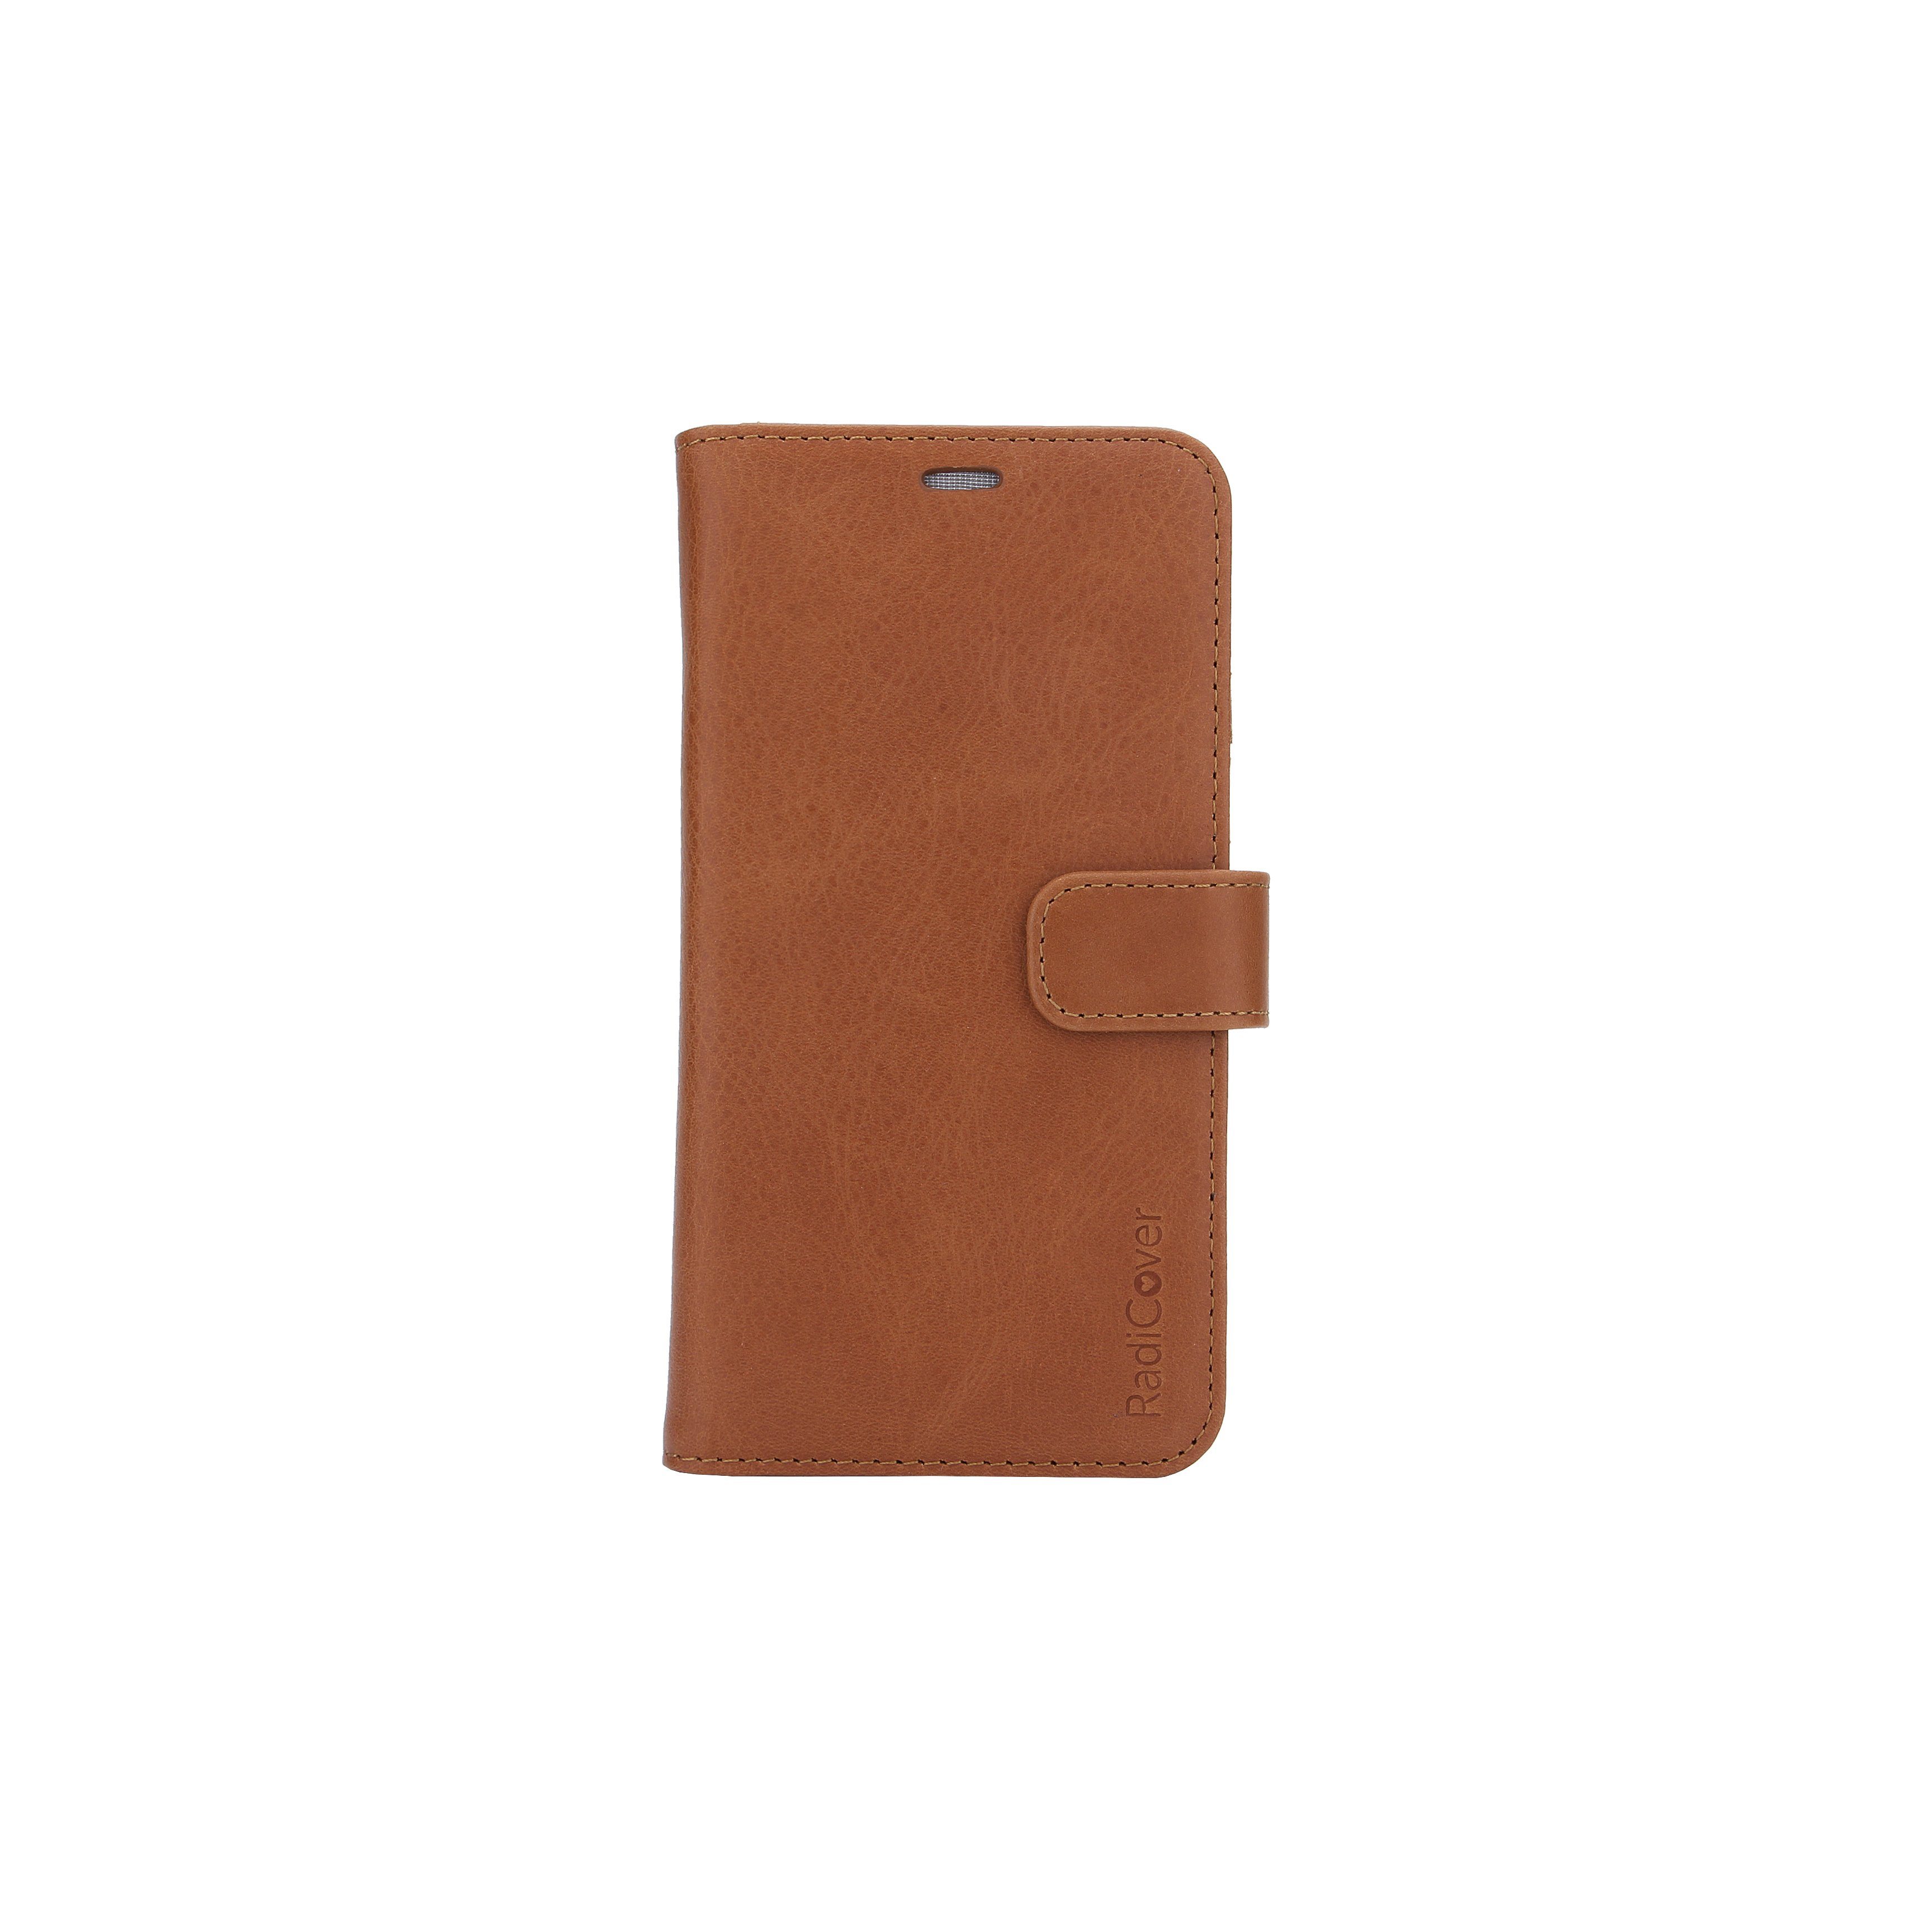 Radicover - Radiationprotected Mobilewallet Leather iPhone XR 2in1 Magnetskal ( 3-led RIFD )